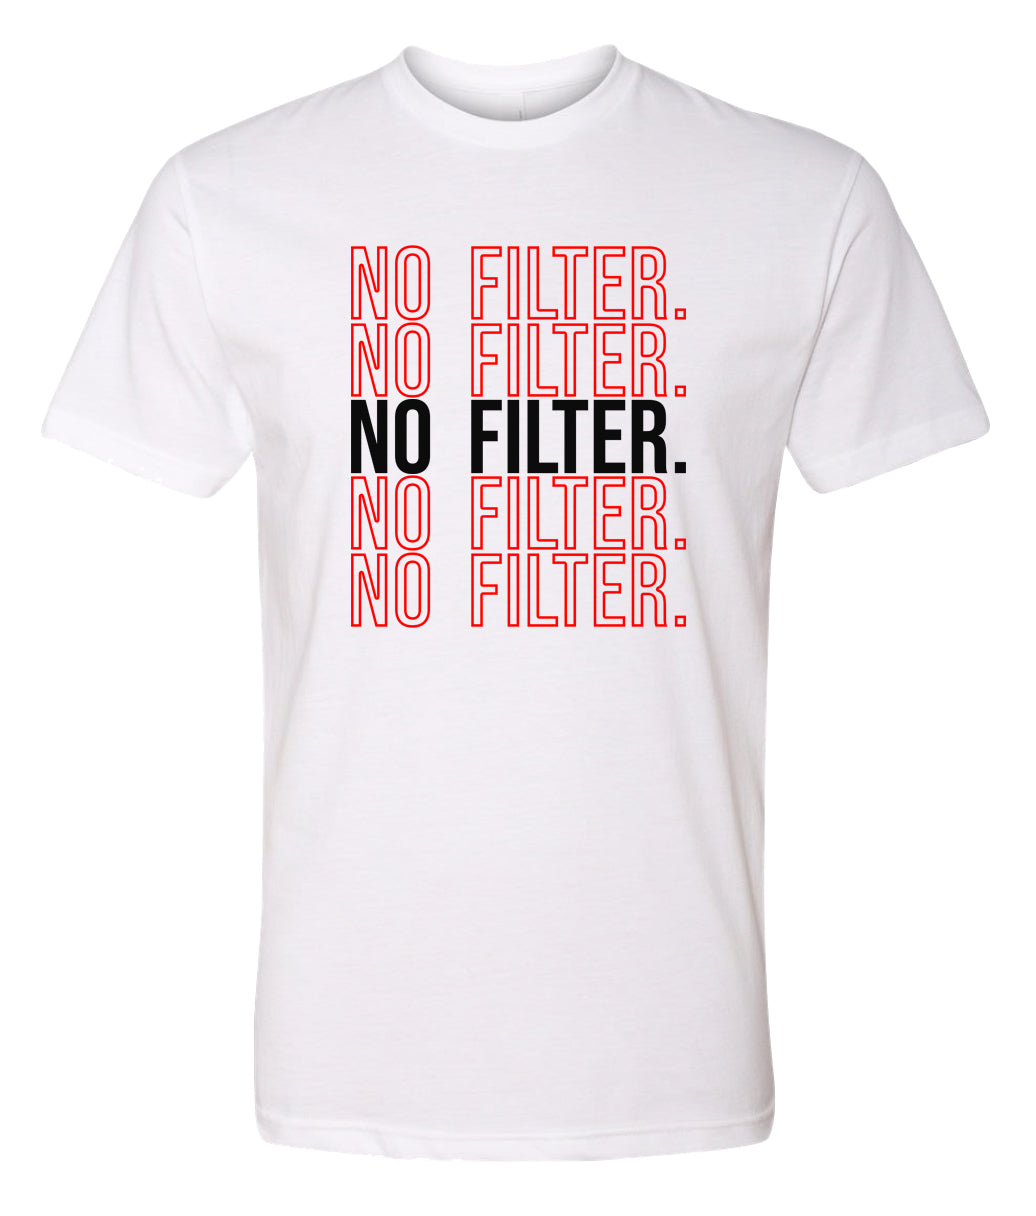 white no filter crewneck t shirt